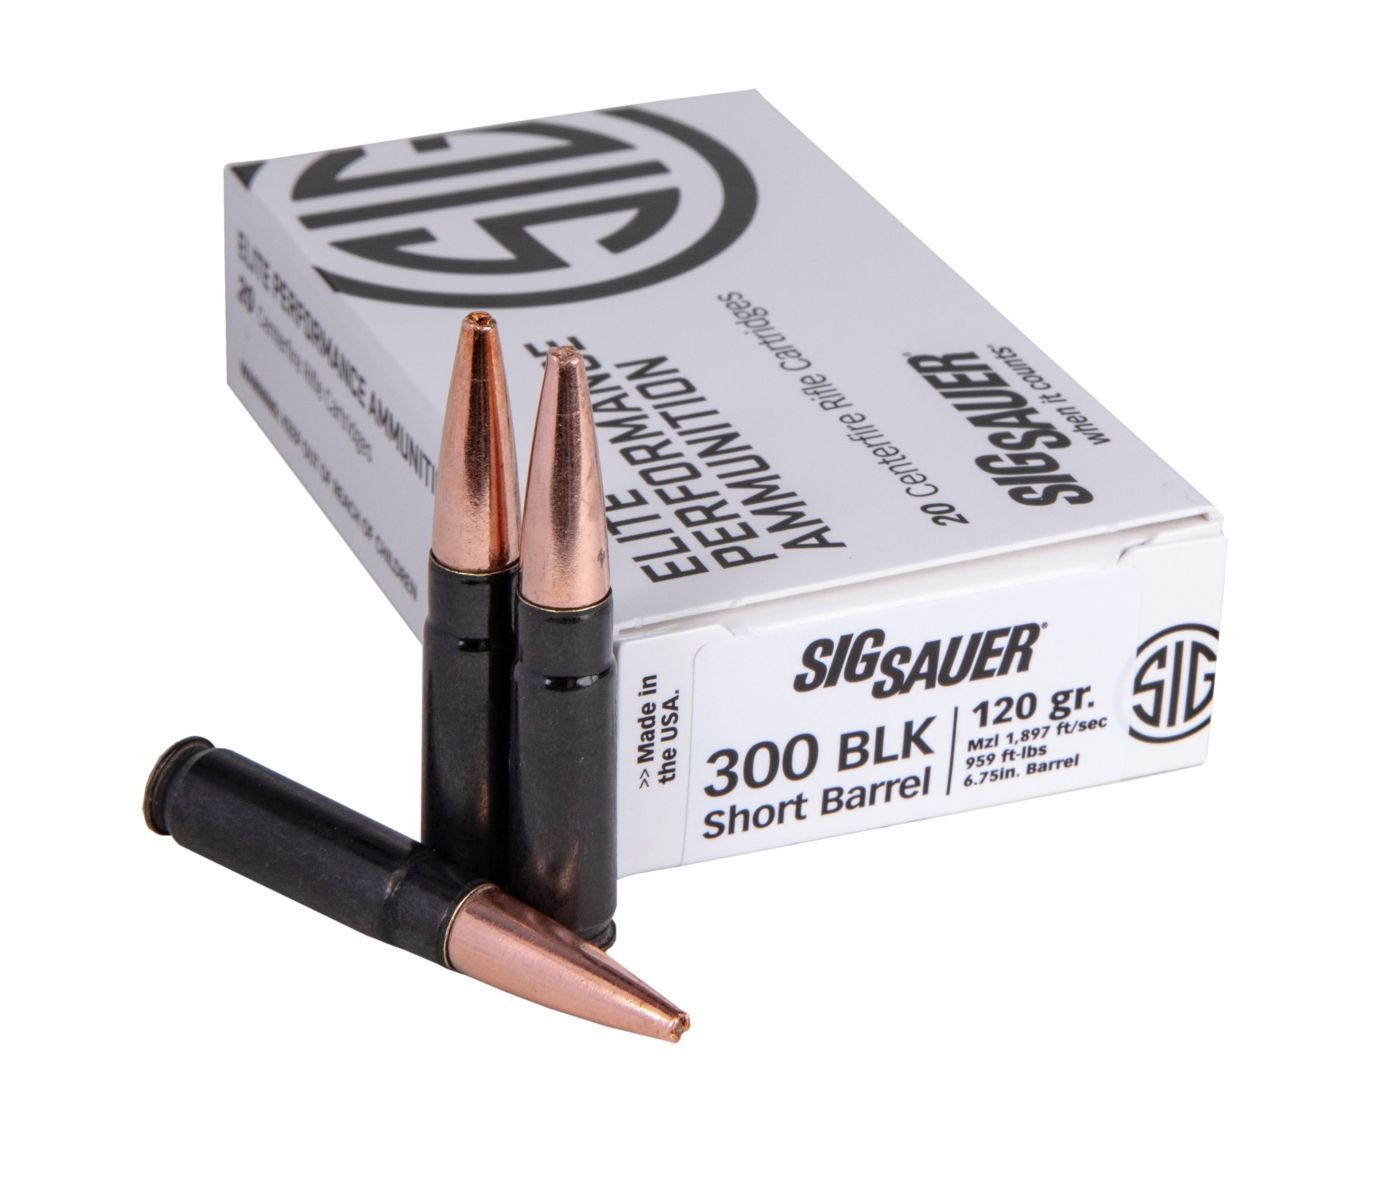 Launching New Rounds: Know the Ammo Your… | Shooting Sports